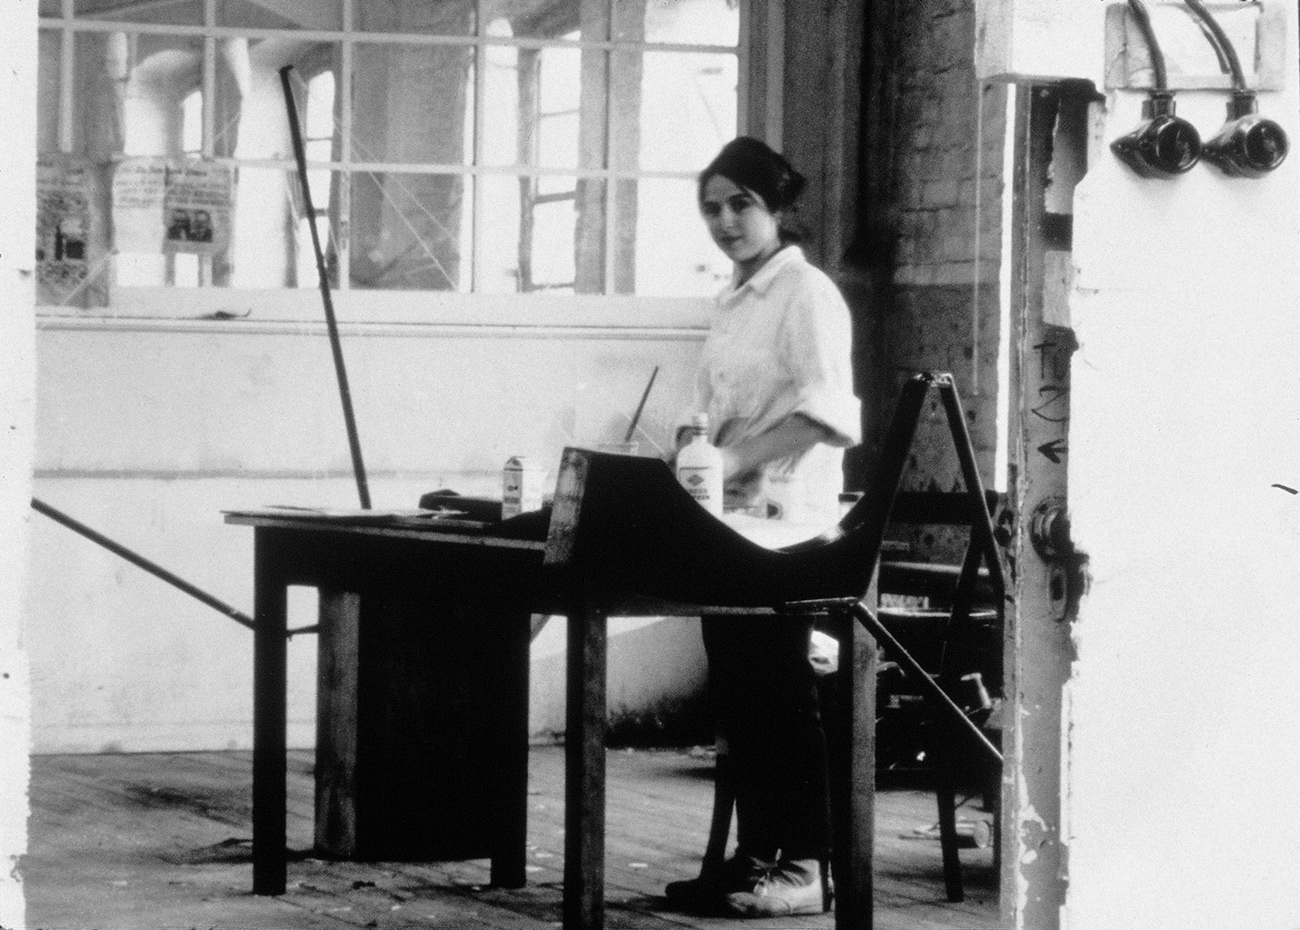 Eva wears a white shirt and dark pants, and stands before a drafting table. There are mirrored windows behind her to the left, and a brick wall behind her to the right.